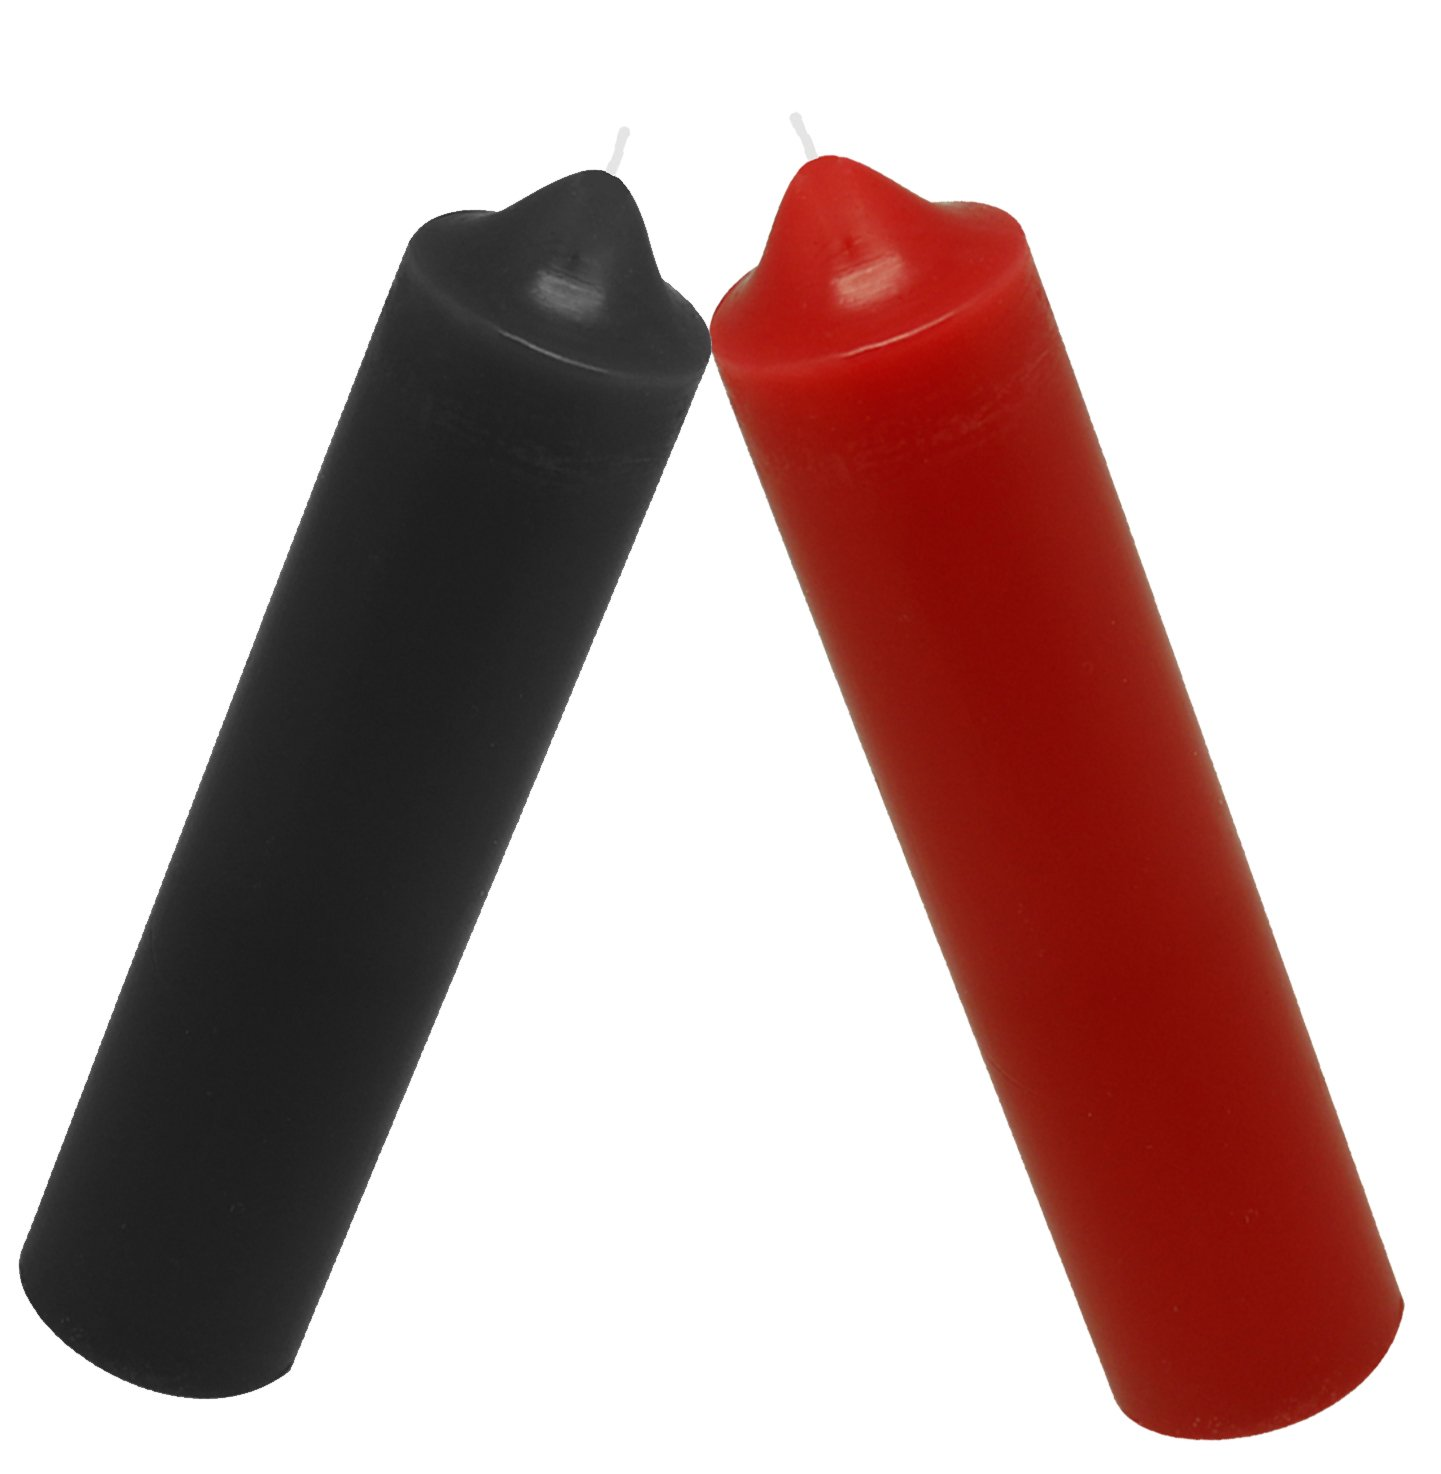 Low Temperature Candles,Romantic Candles for Couples (2PCS) (Black+Red)